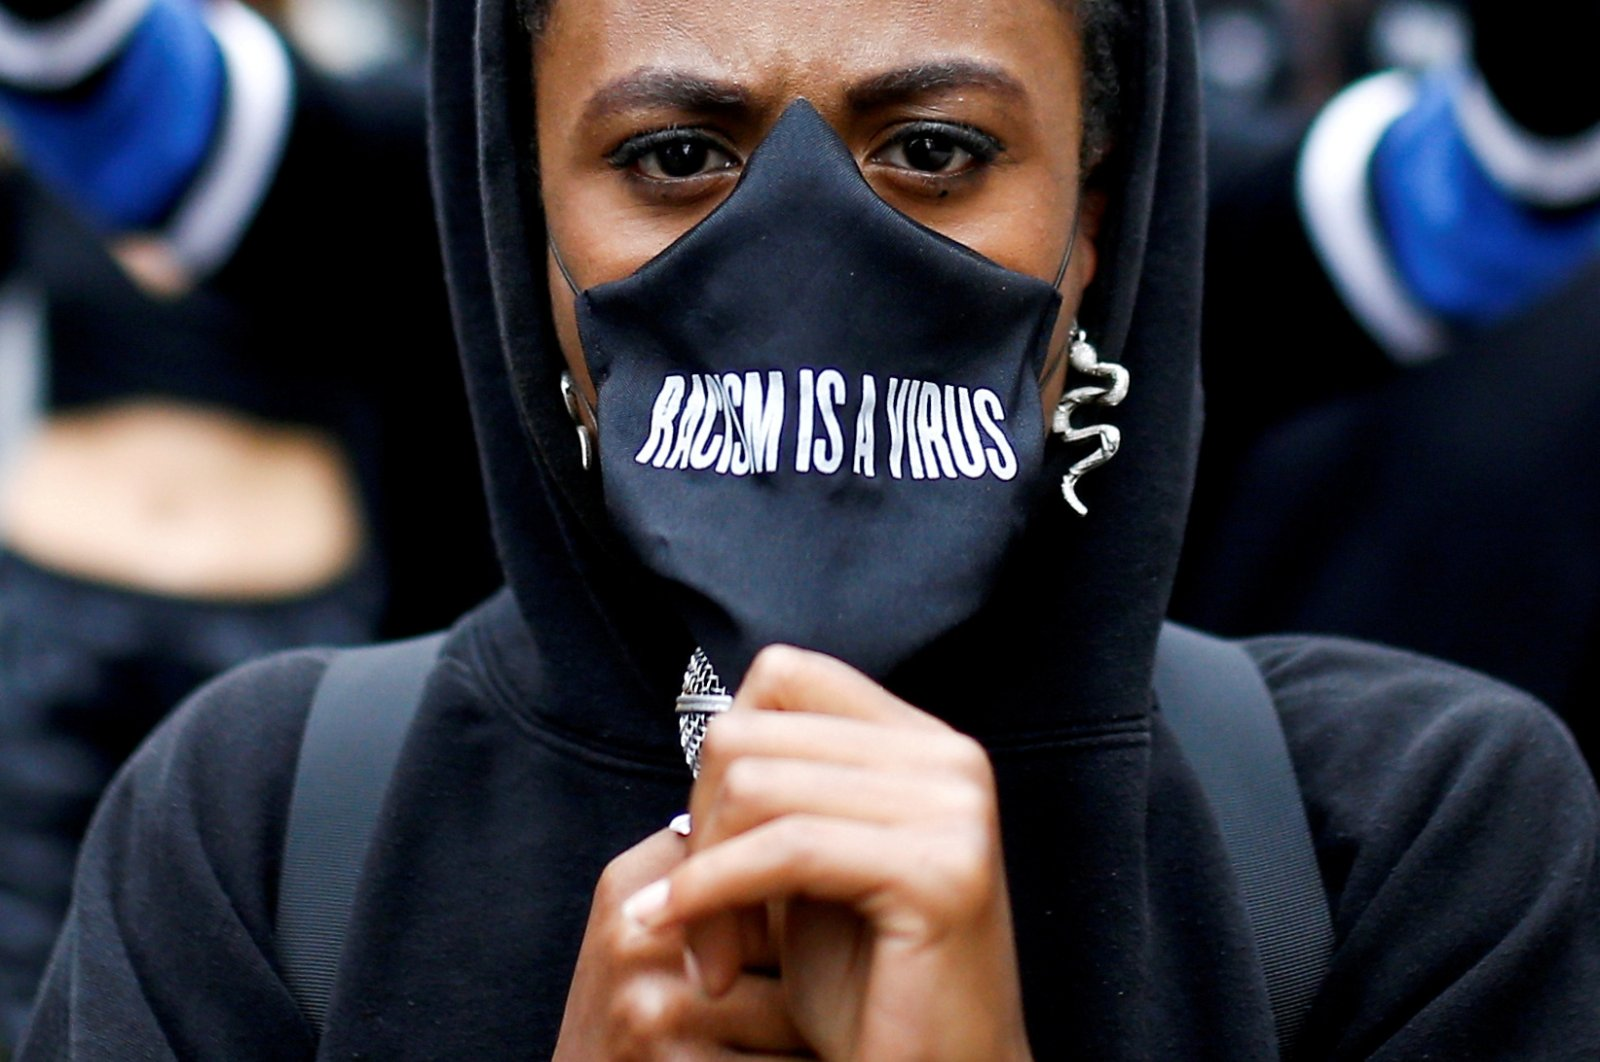 A demonstrator wears a protective mask during a Black Lives Matter protest near Piccadilly Circus in London, Britain, June 29, 2020. (Reuters Photo)